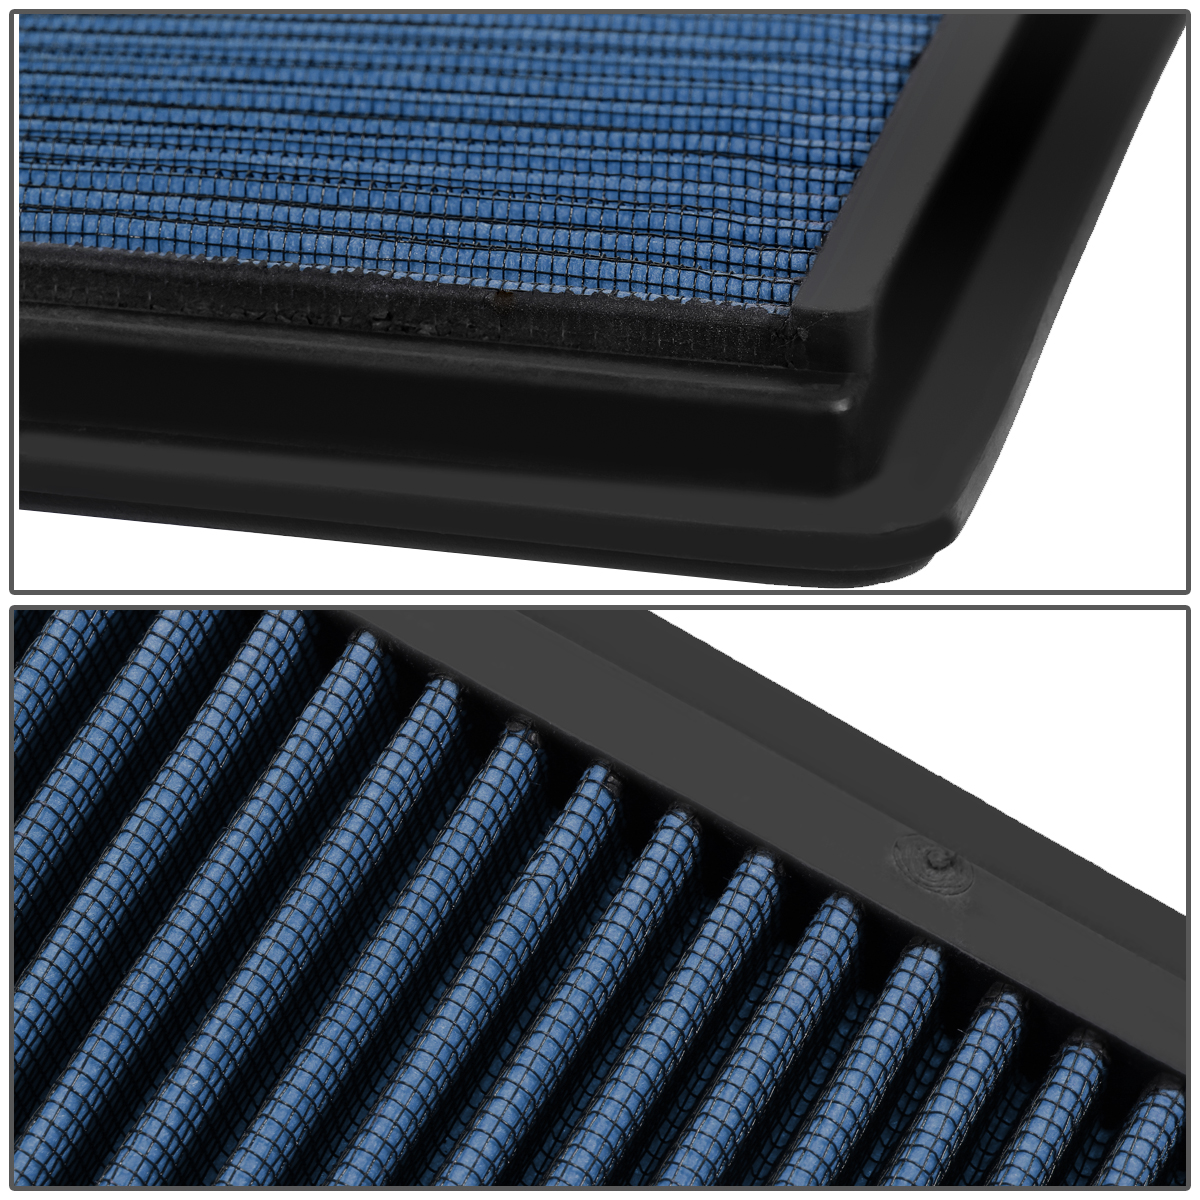 FOR 05-10 MUSTANG GT SHELBY BLUE REUSABLE/&WASHABLE HIGH FLOW PANEL AIR FILTER